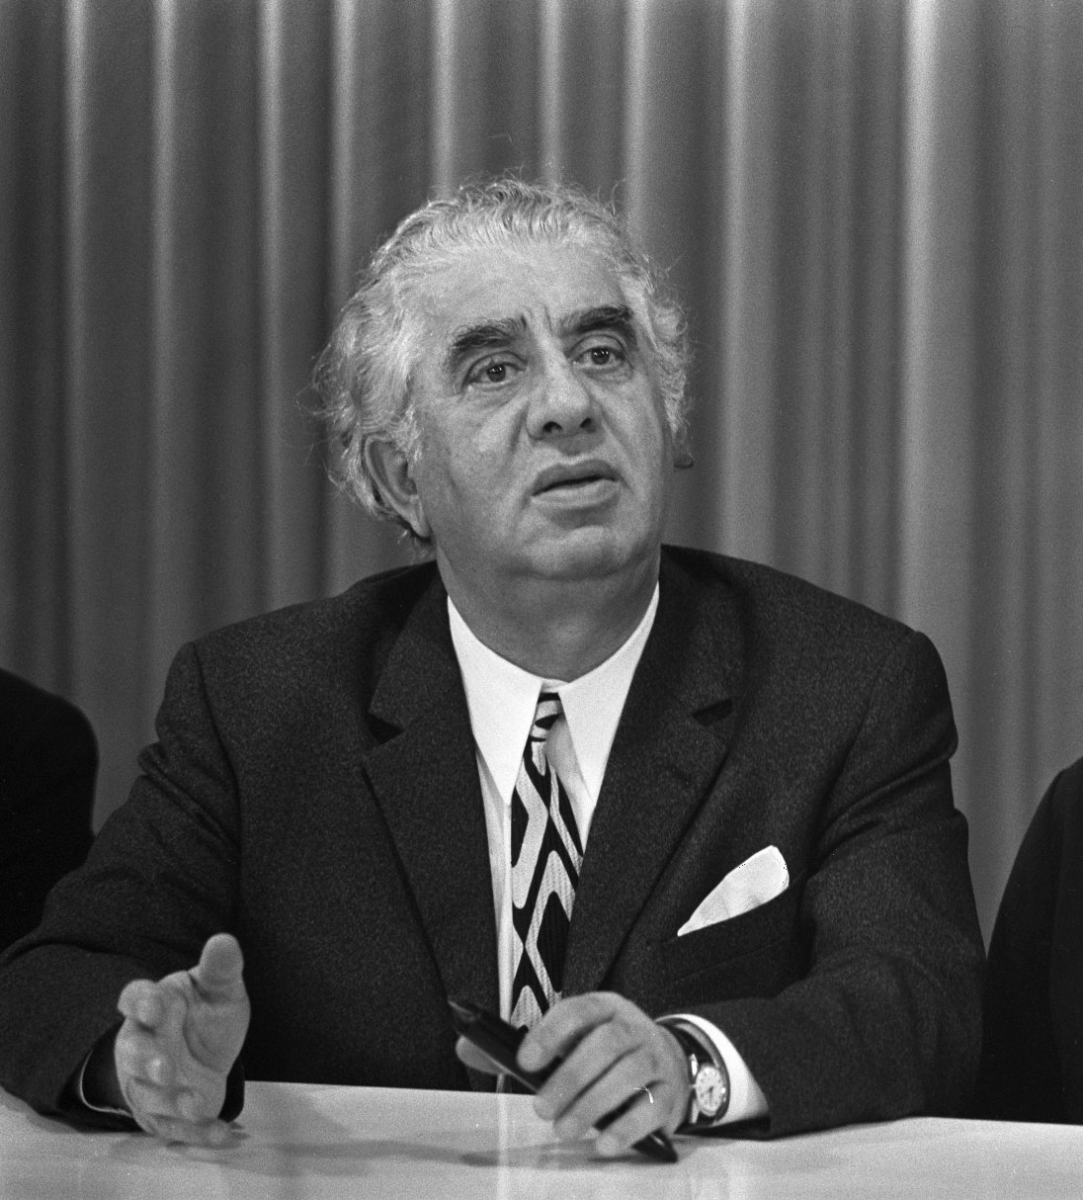 Photograph of Khachaturian in 1971.